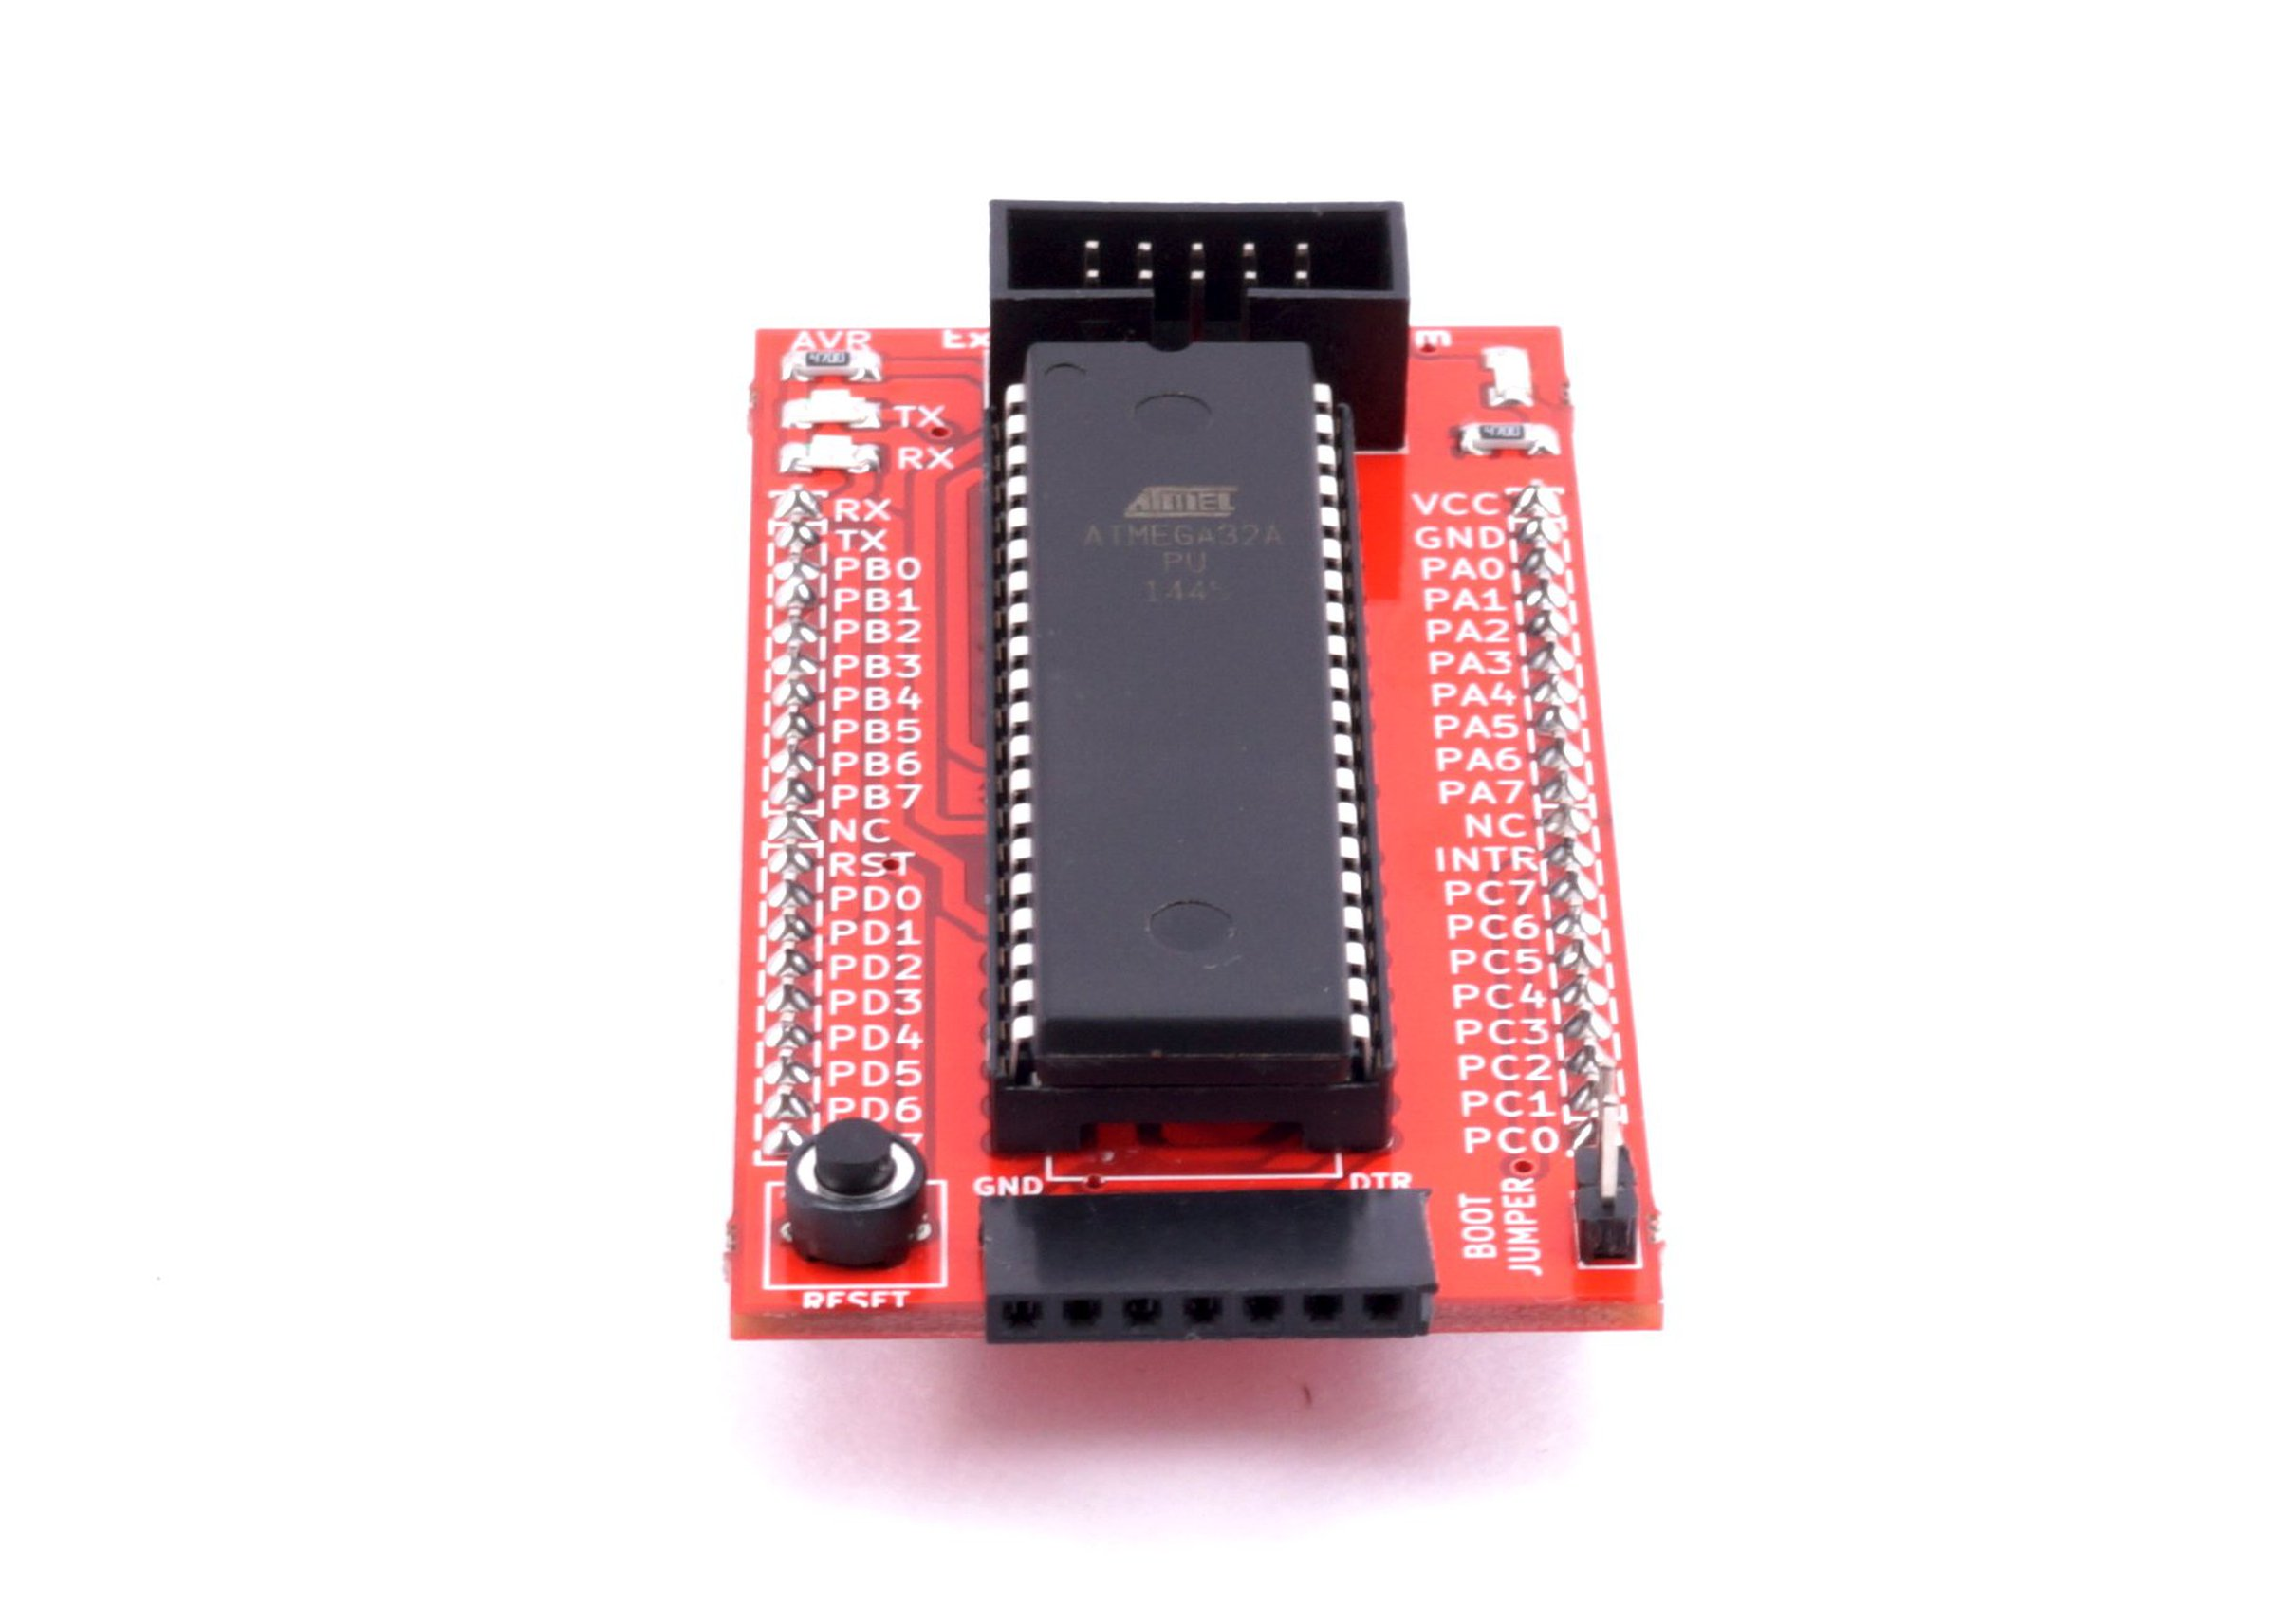 Avr 40 Pin Breakout Board With Atmega32 From Exploreembeddedcom On How To Configure Watchdog Timers Of Microcontroller Atmega16 4